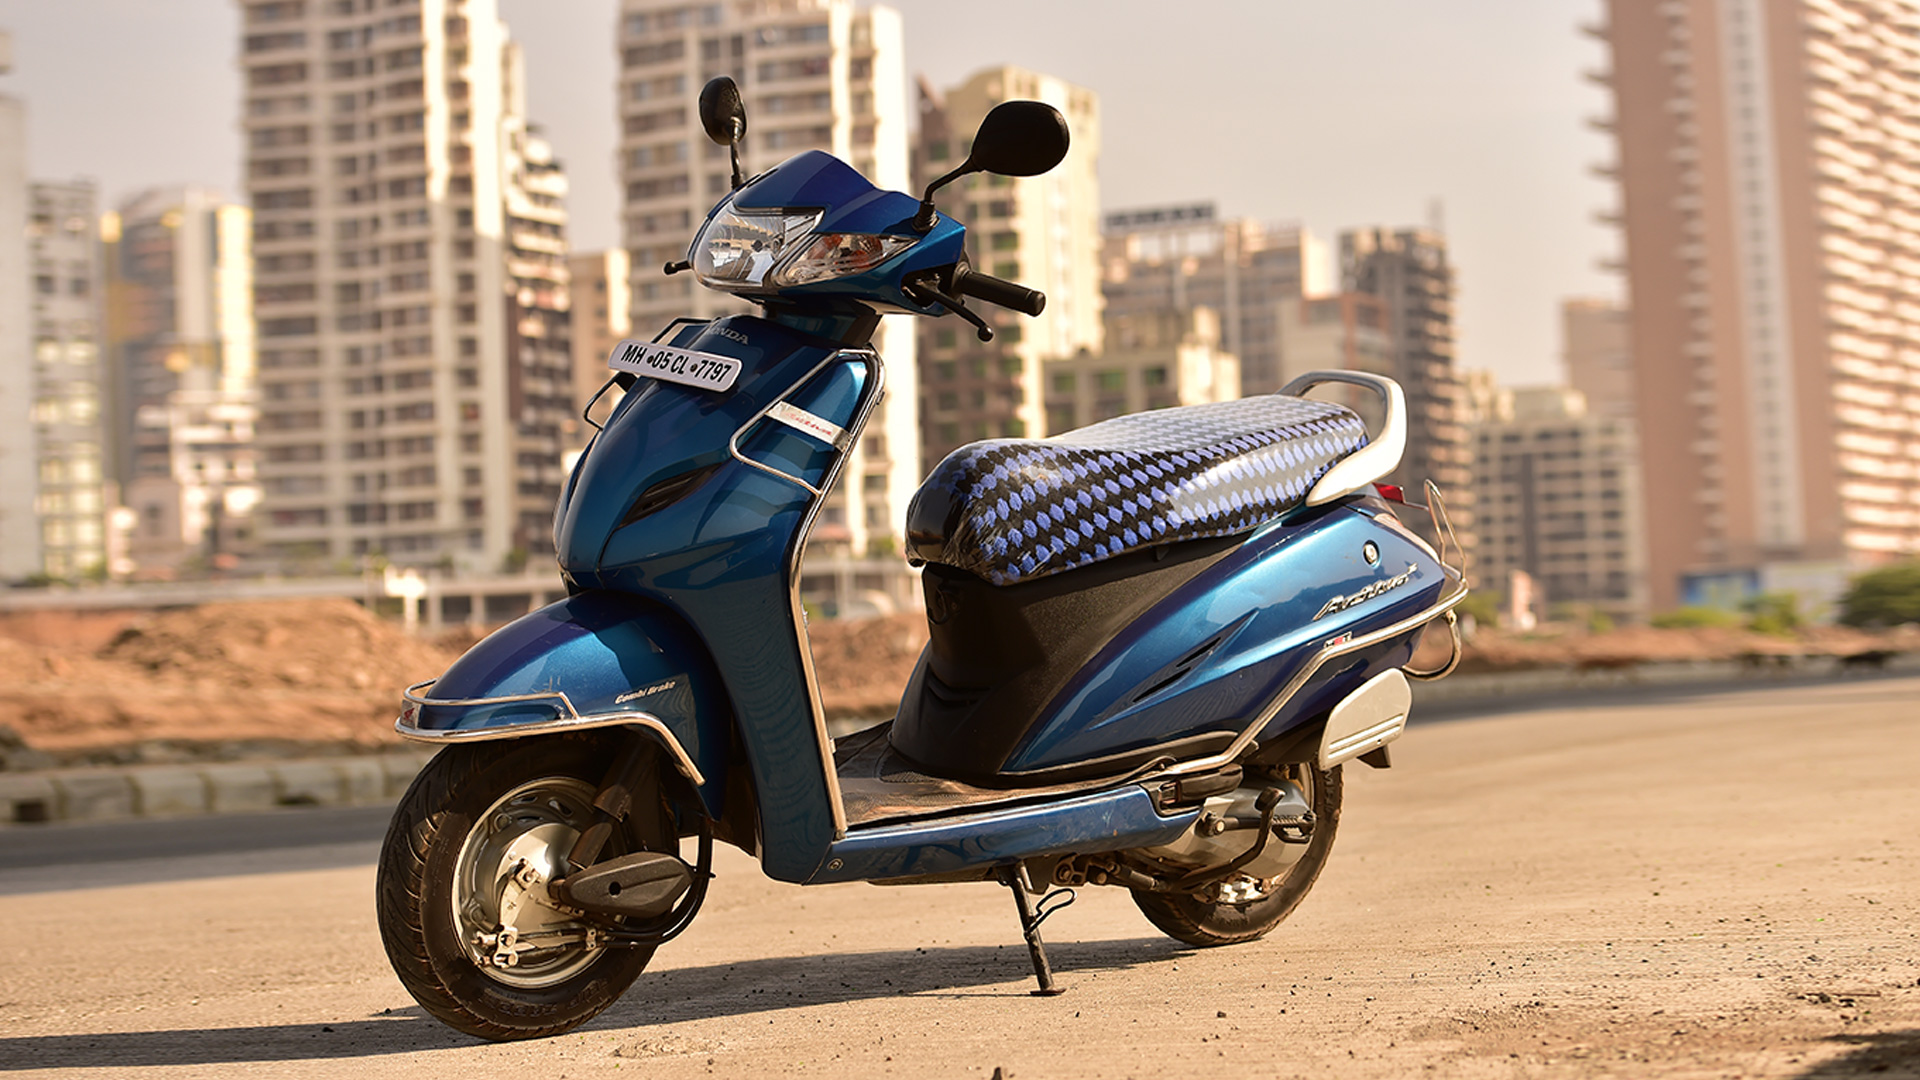 Honda Activa 2015 3G - Price, Mileage, Reviews, Specification, Gallery - Overdrive